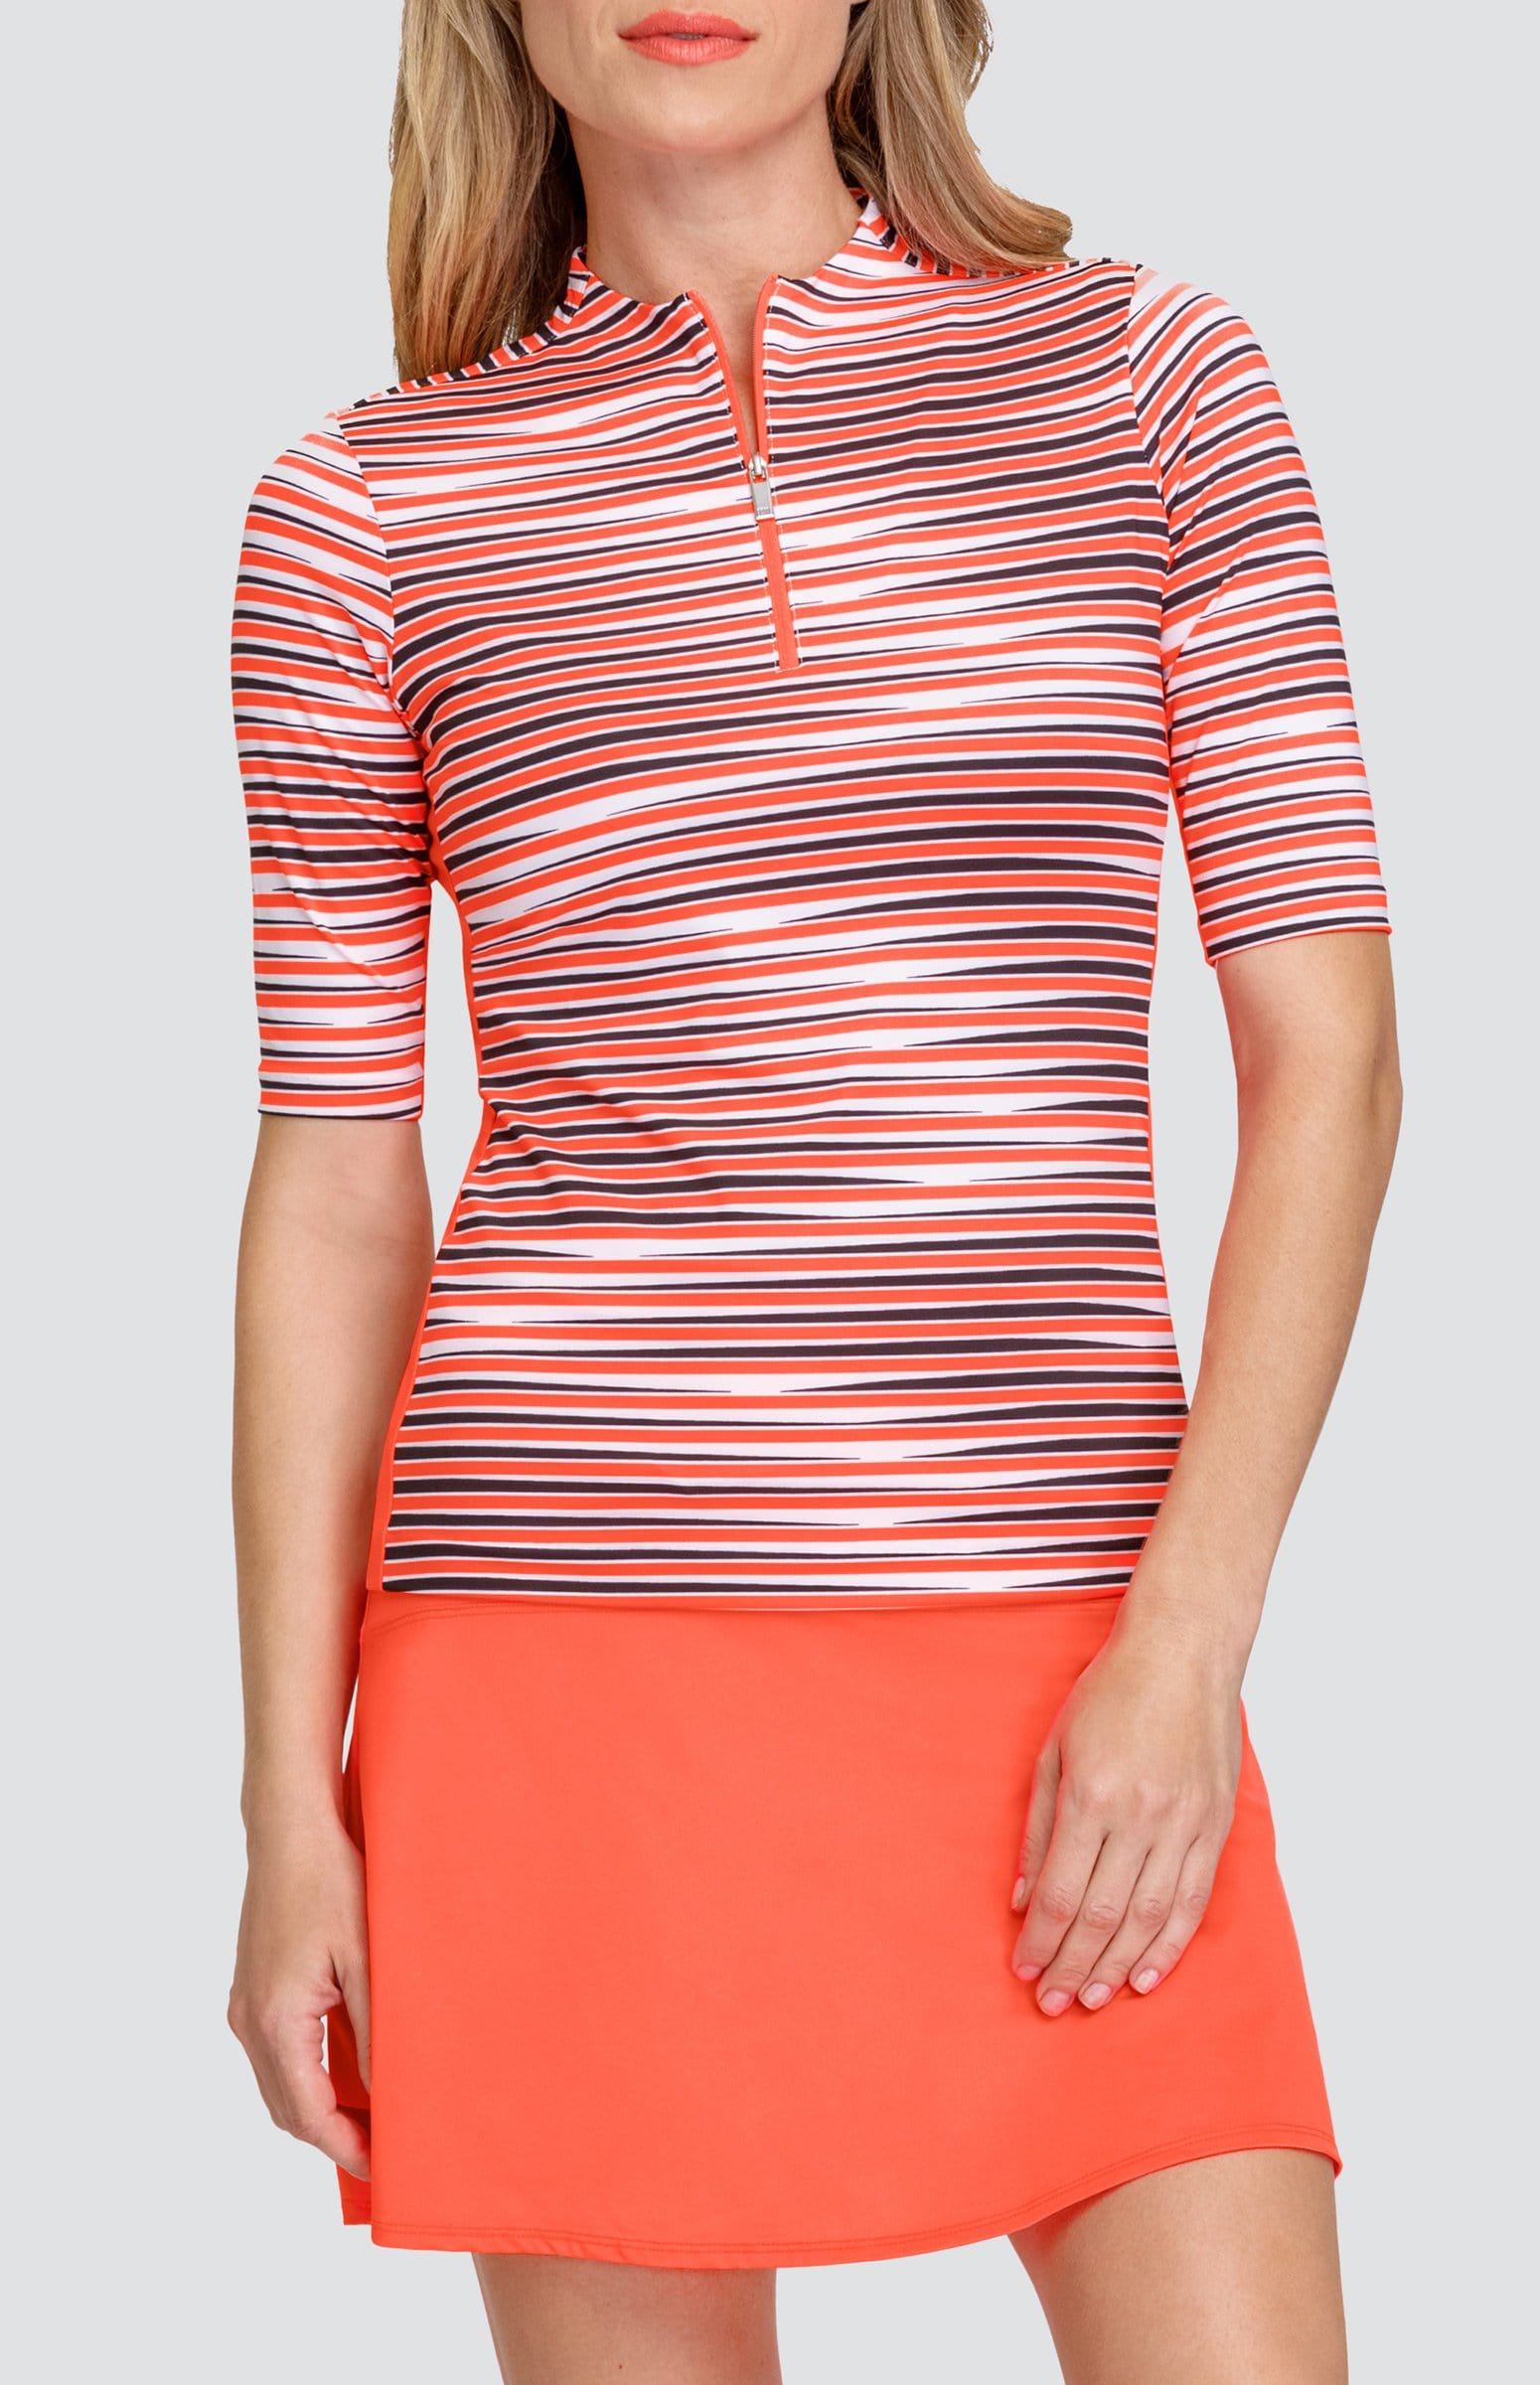 Callie Top - Waning Stripe